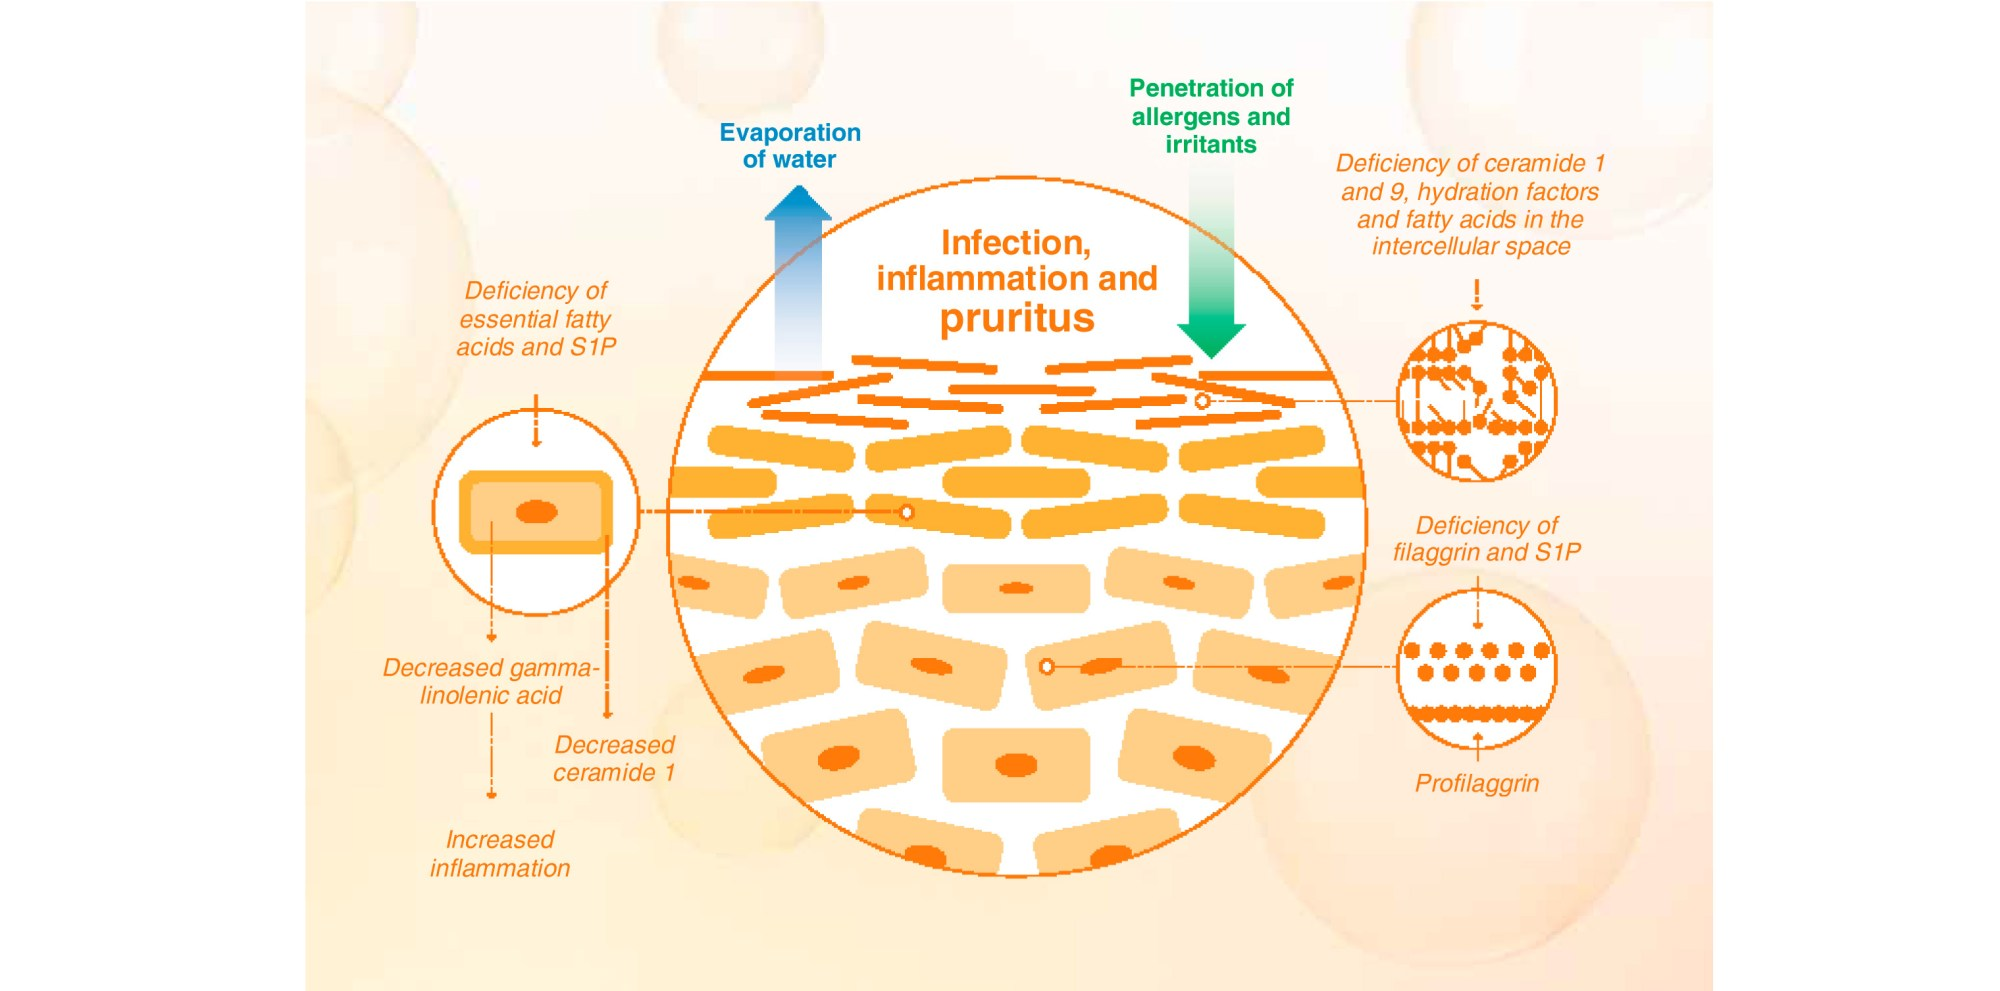 hight resolution of the skin barrier disorder leads to skin dryness which exacerbates the pruritus and facilitates the penetration of environmental and microbiological